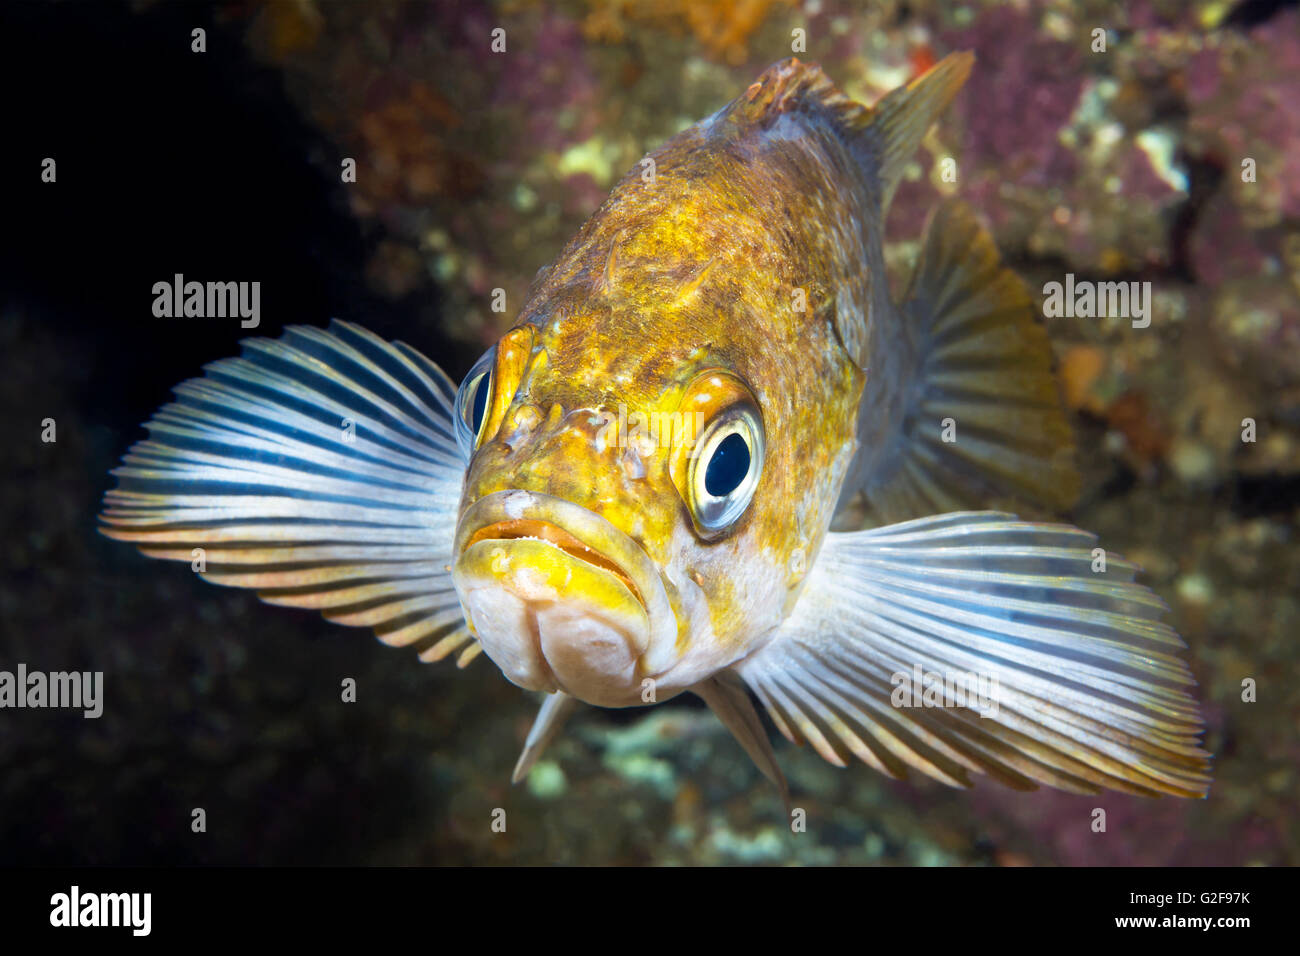 A California copper rockfish uses its fins to wedge itself onto a reef while resting at dusk - Stock Image